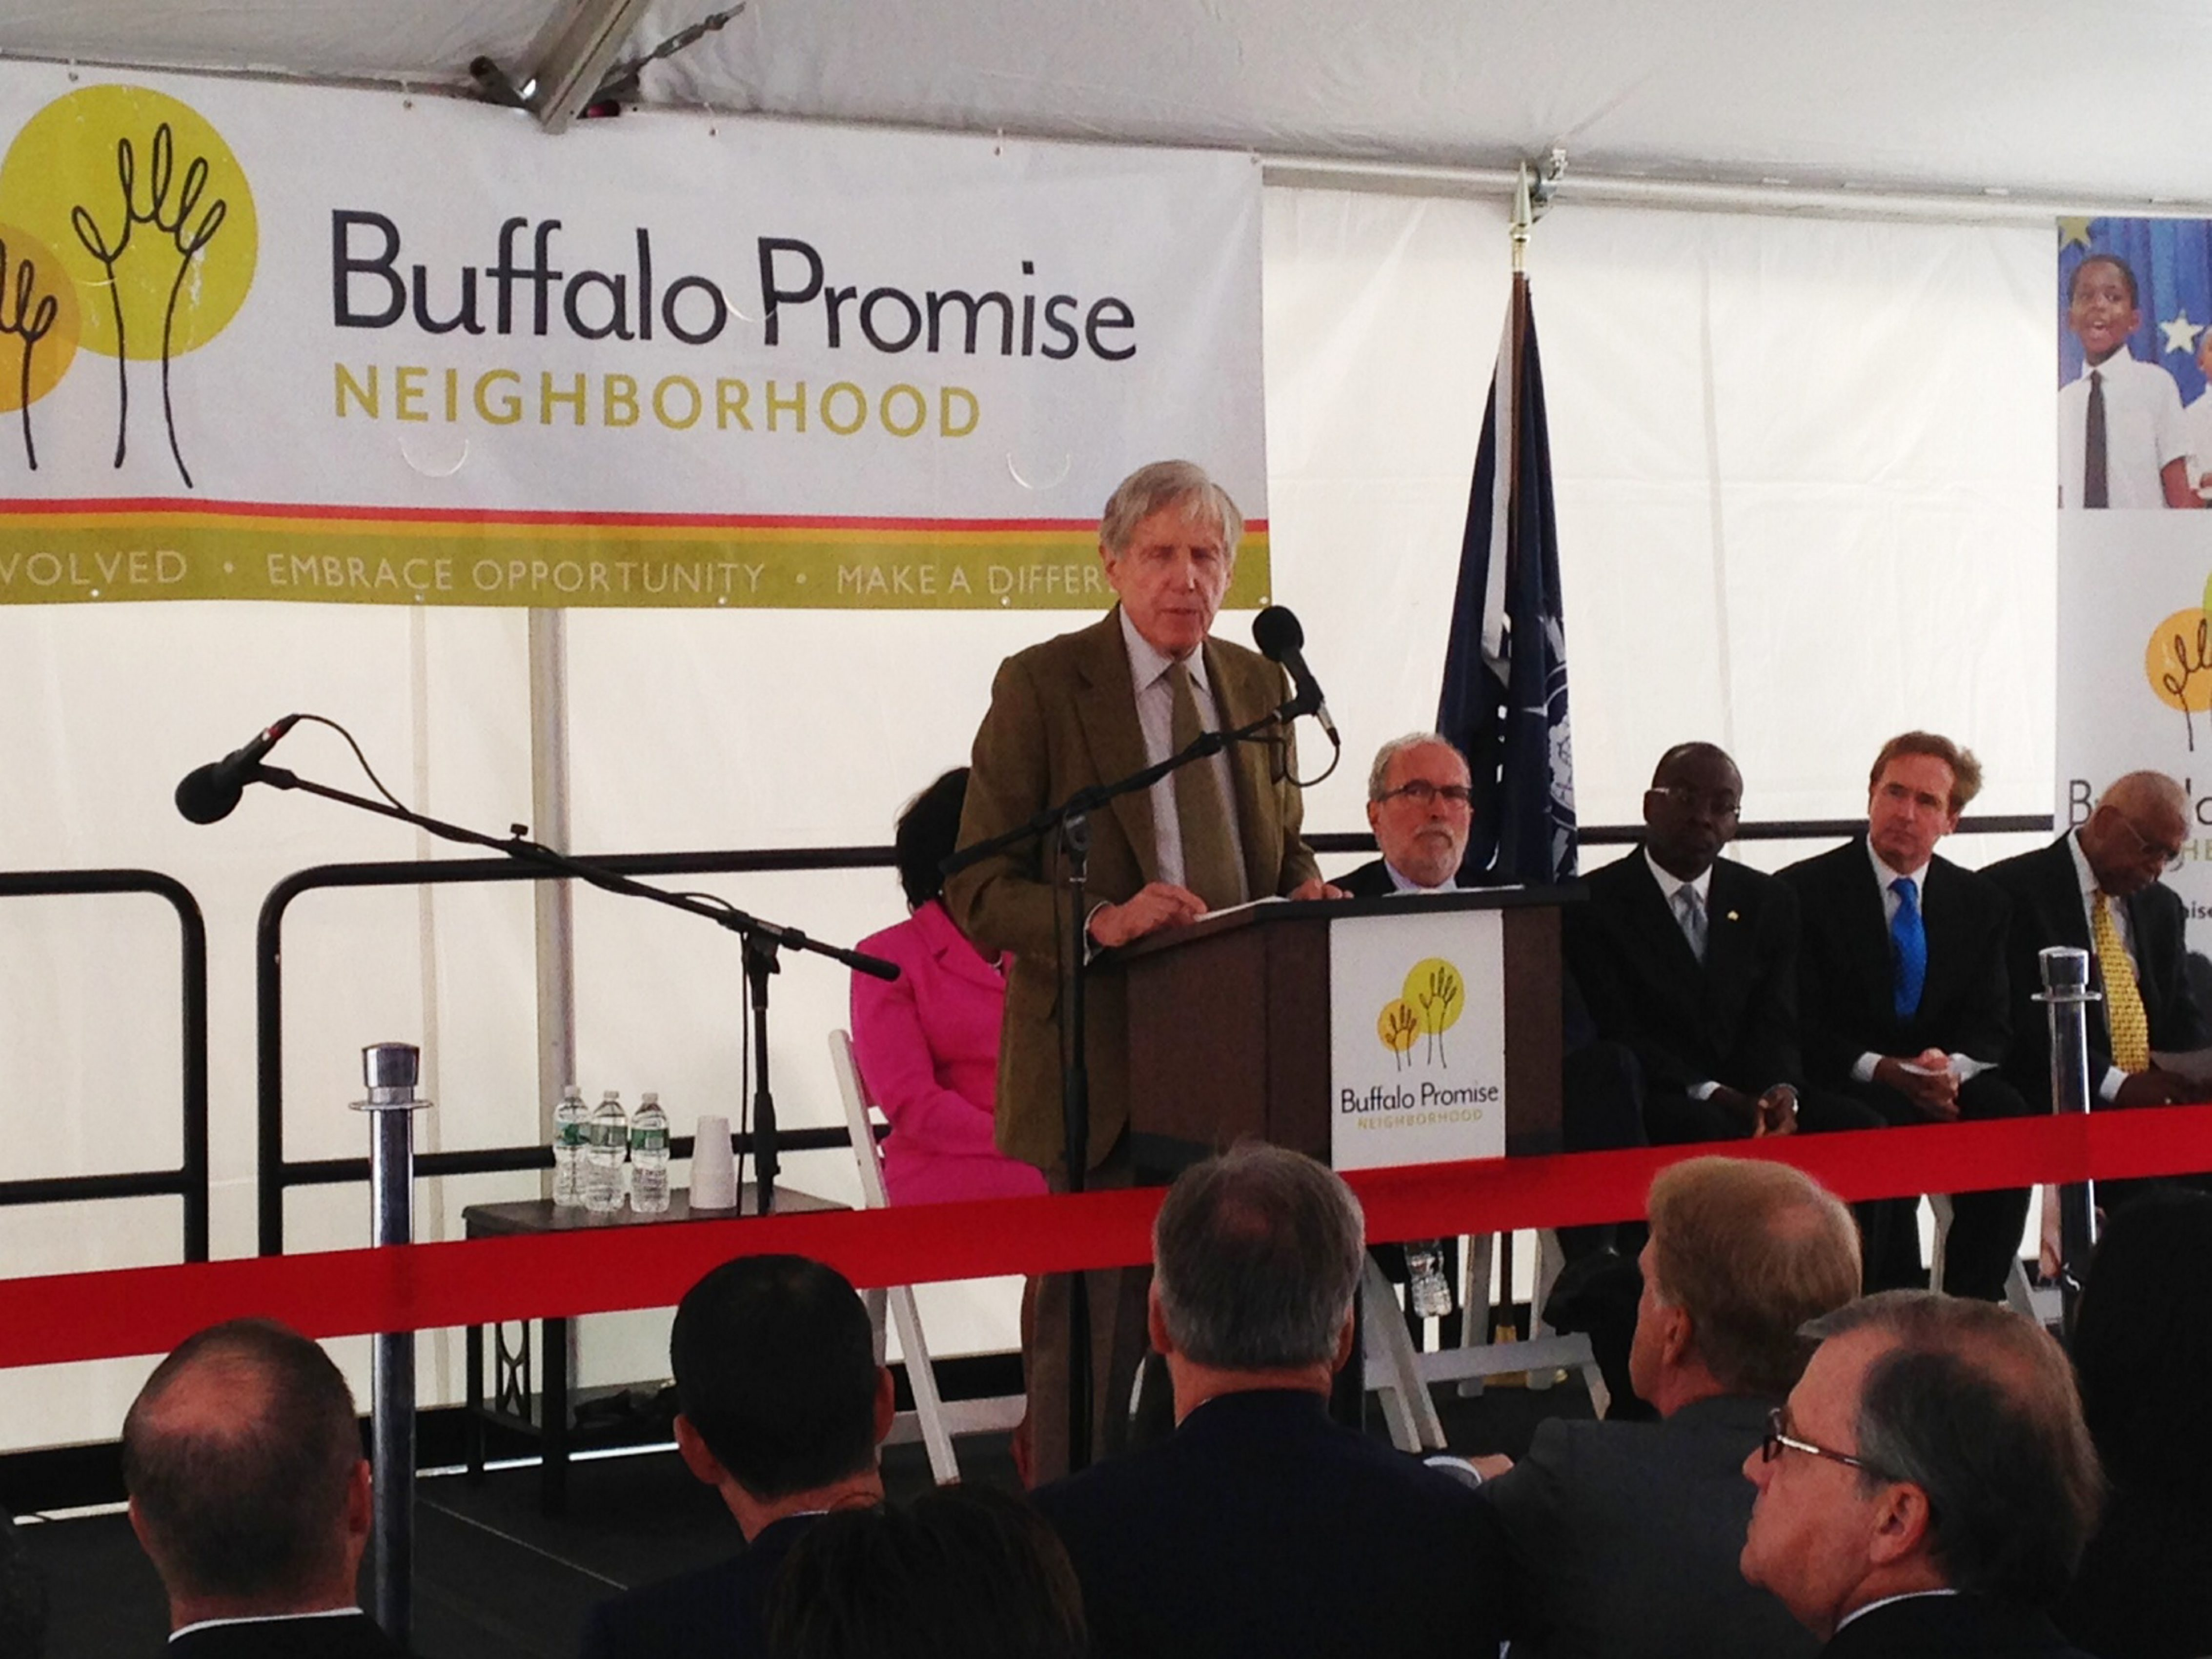 Robert G. Wilmers, chairman and CEO of M&T Bank, speaks at the Buffalo Promise Neighborhood Children's Academy grand opening today.